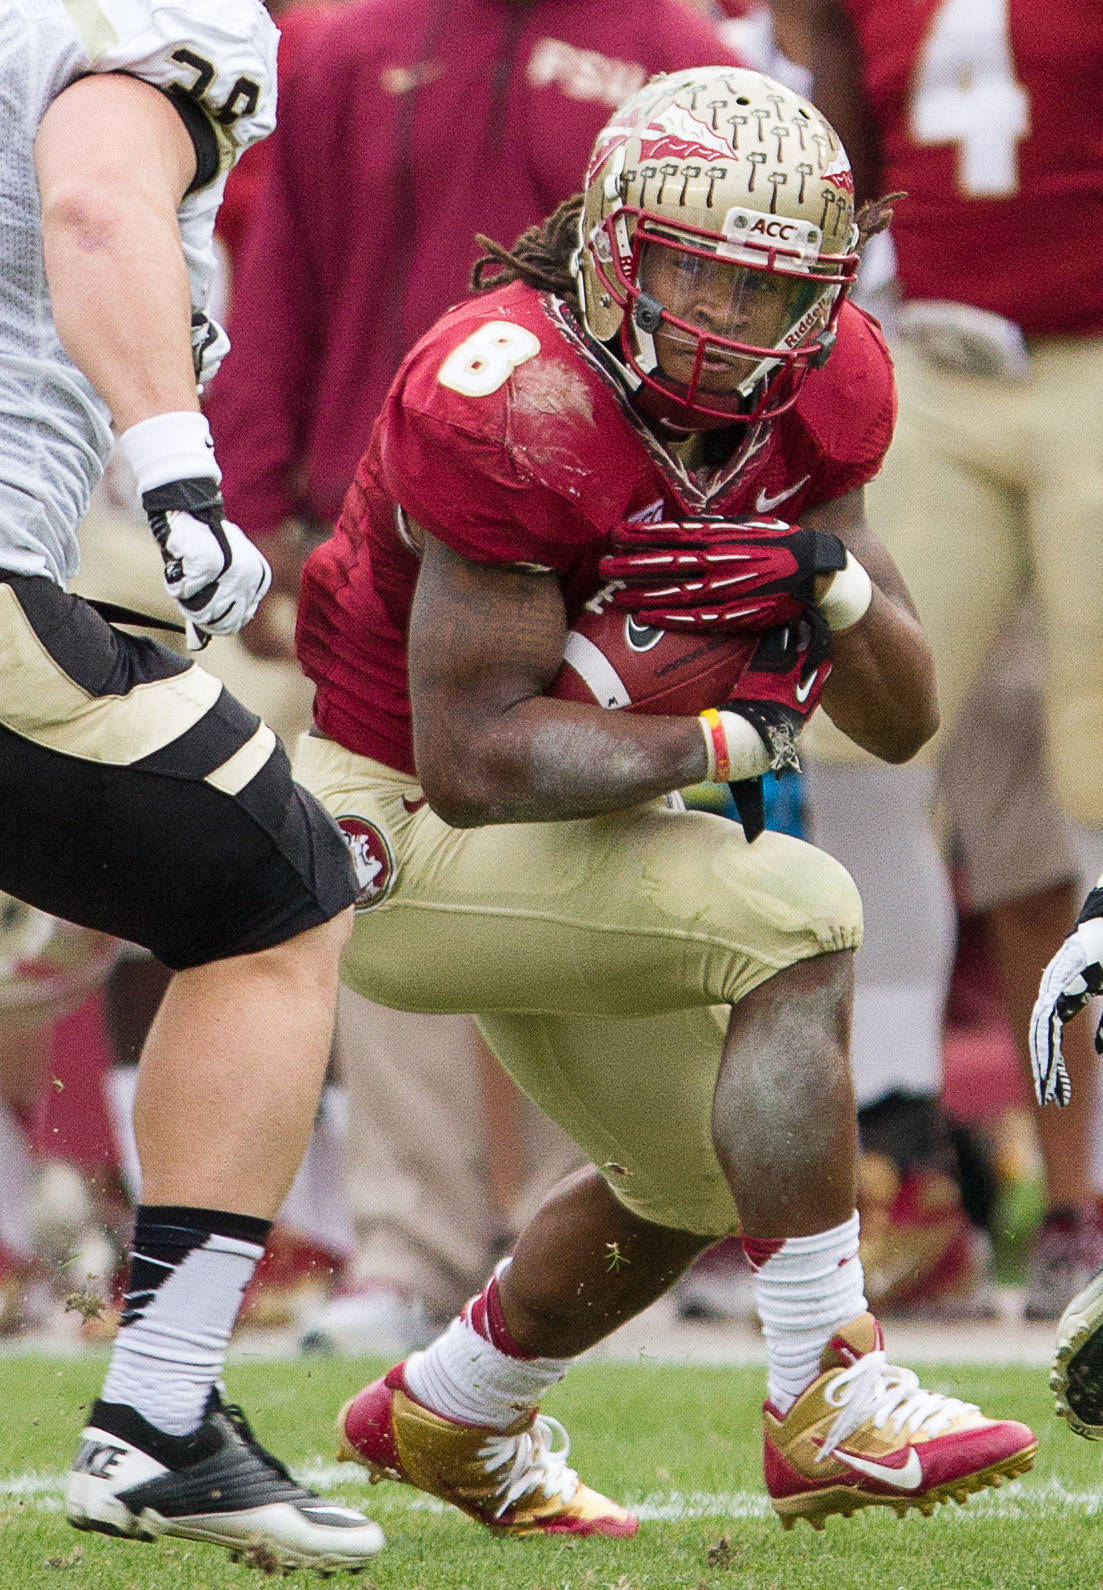 Devonta Freeman (8) protects the ball during FSU Football's 80-14 victory over Idaho in Tallahassee, Fla on Saturday, November 23, 2013. Photos by Mike Schwarz.